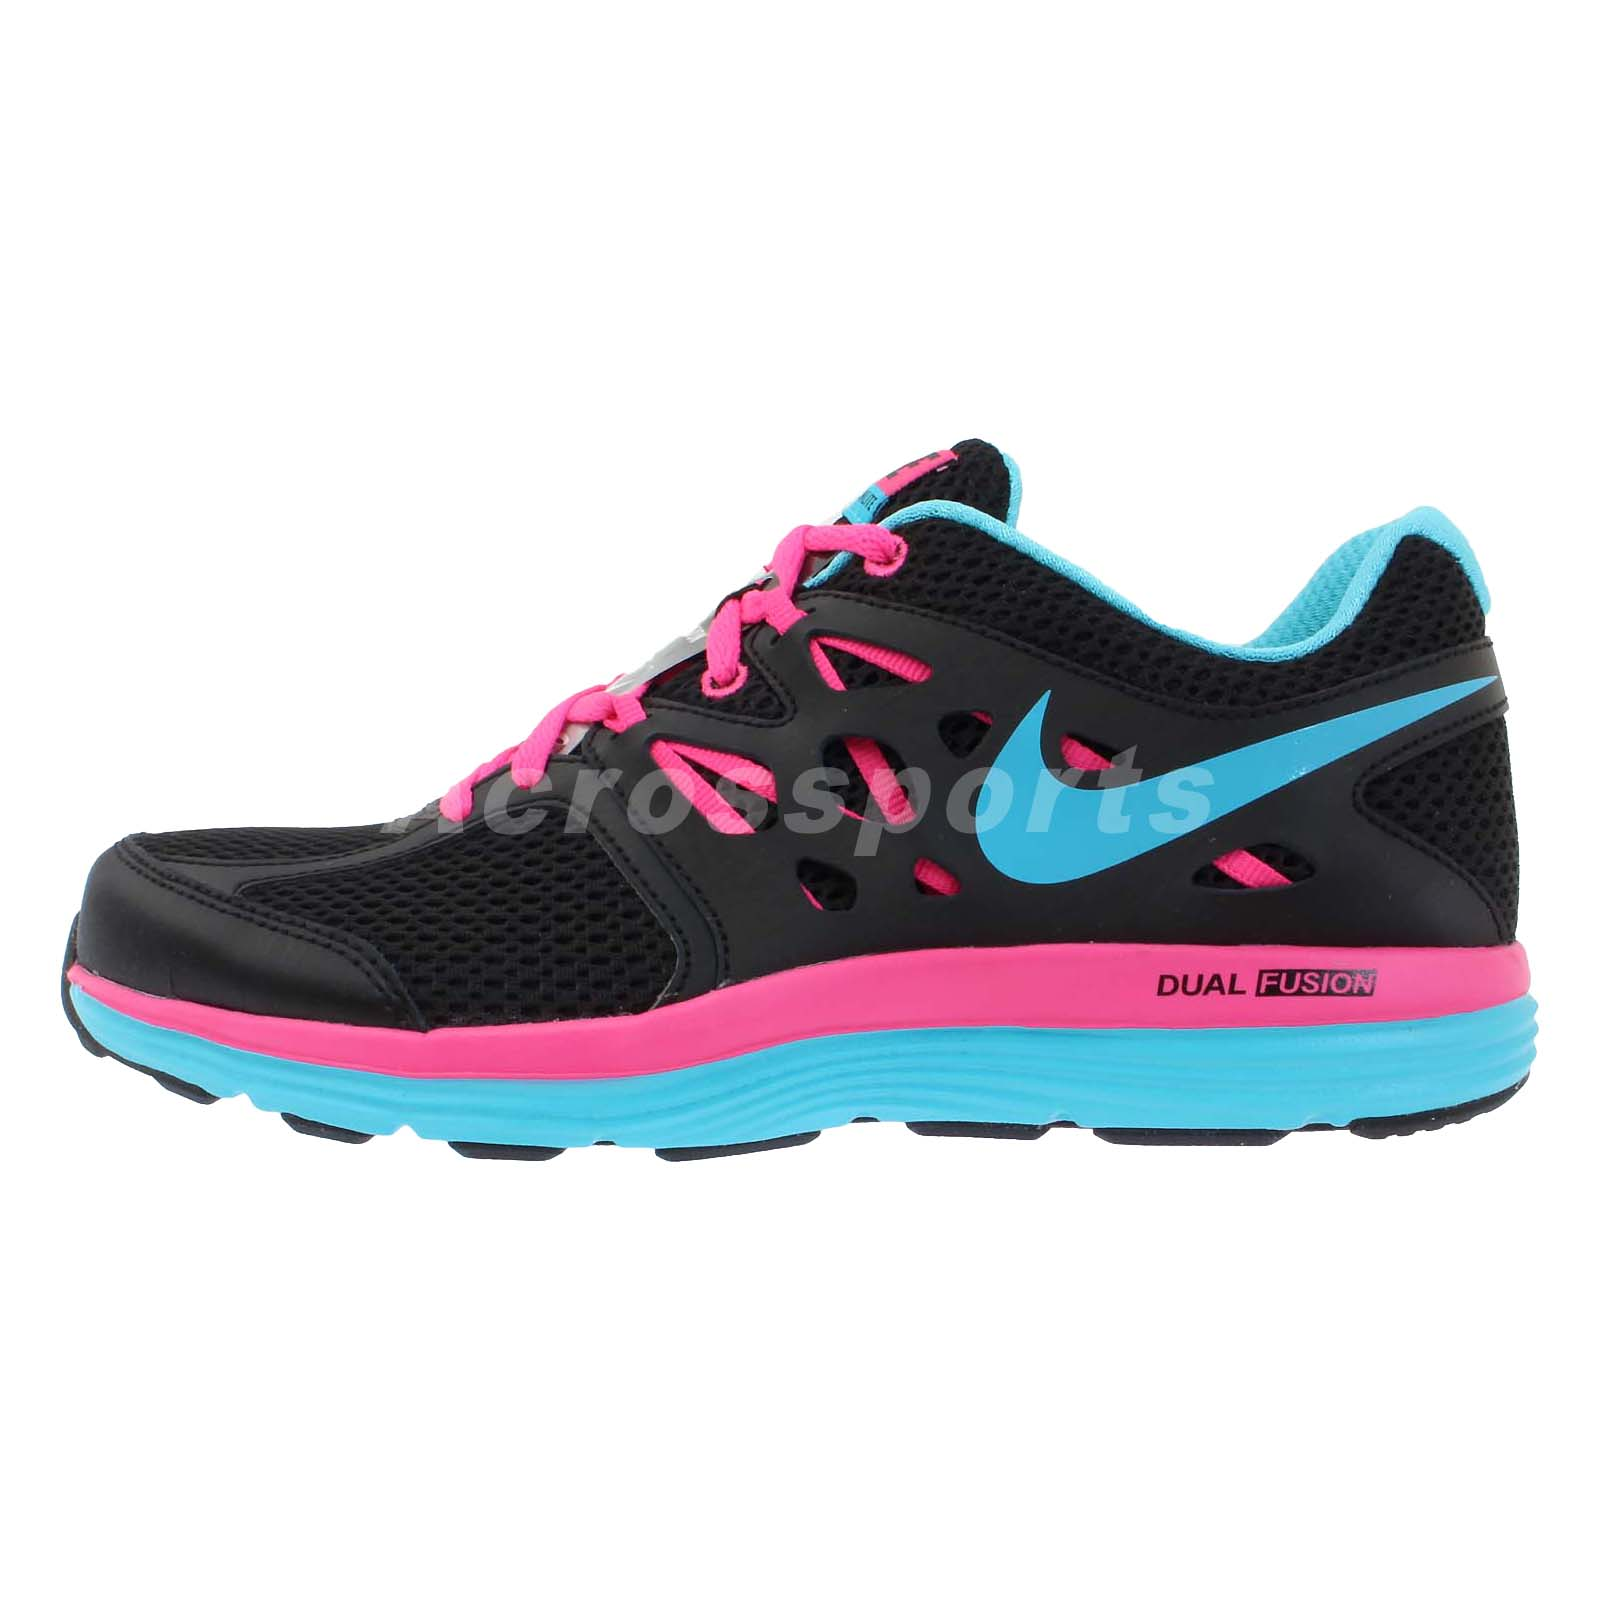 nike wmns dual fusion lite black pink blue 2013 womens lightweight running shoes ebay. Black Bedroom Furniture Sets. Home Design Ideas